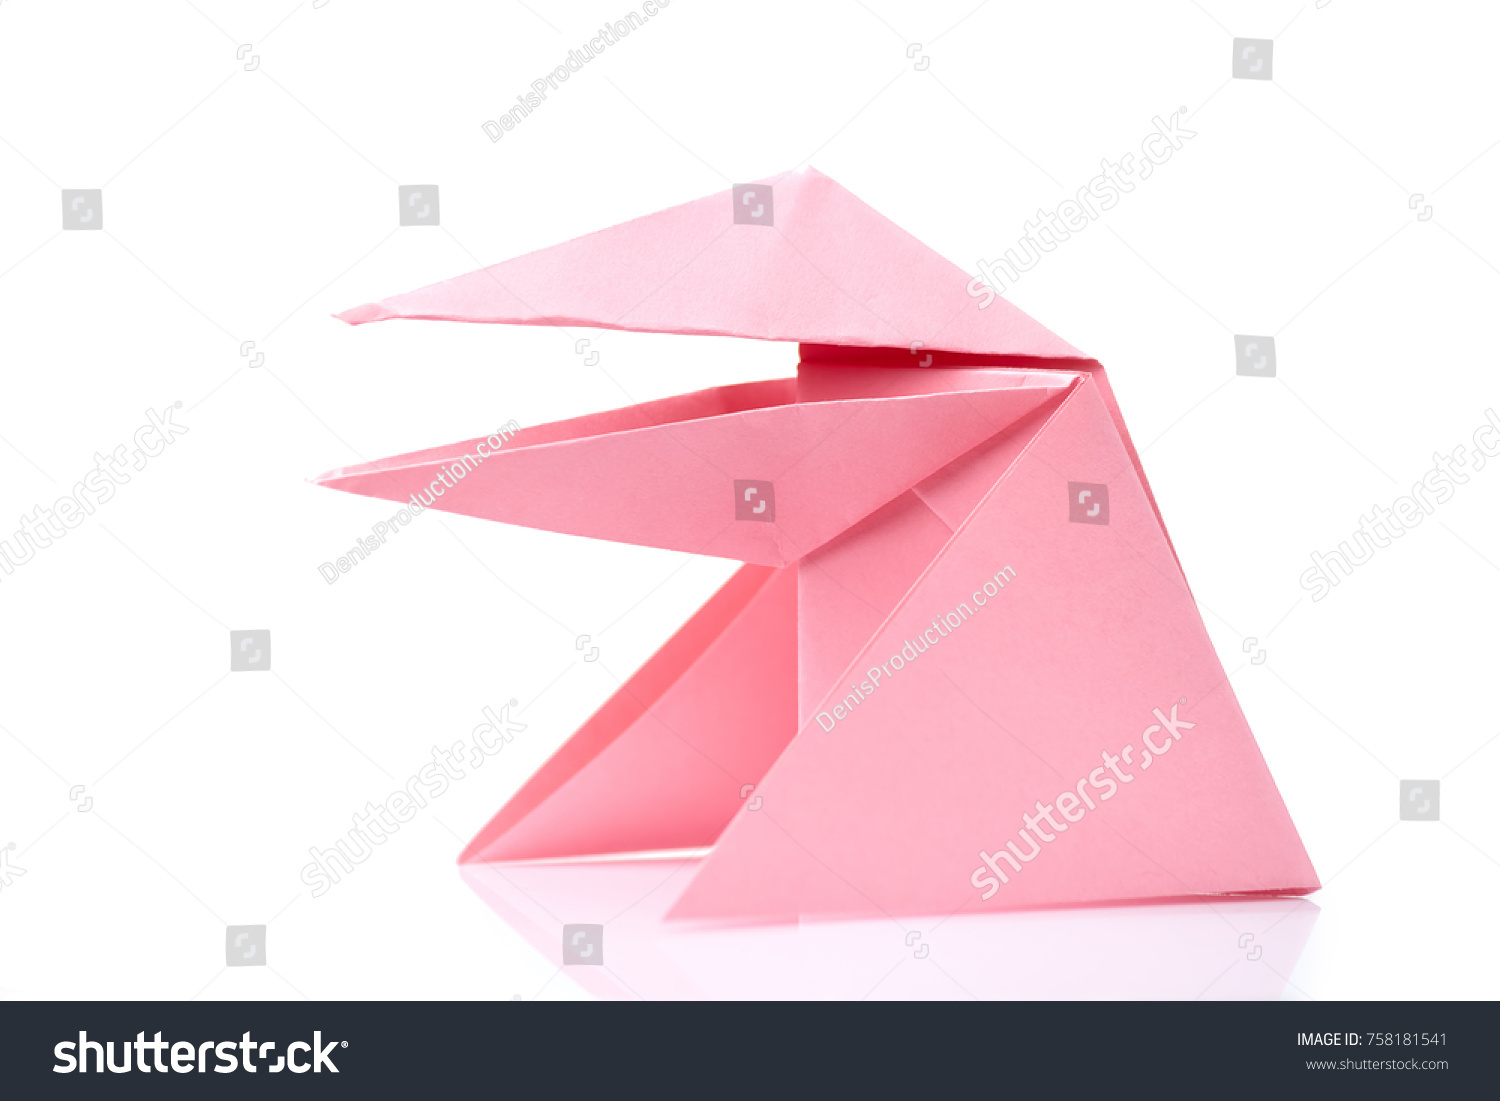 Simplified frog origami design easy level stock photo 758181541 simplified frog origami design easy level for little beginners japanese art of folding jeuxipadfo Images